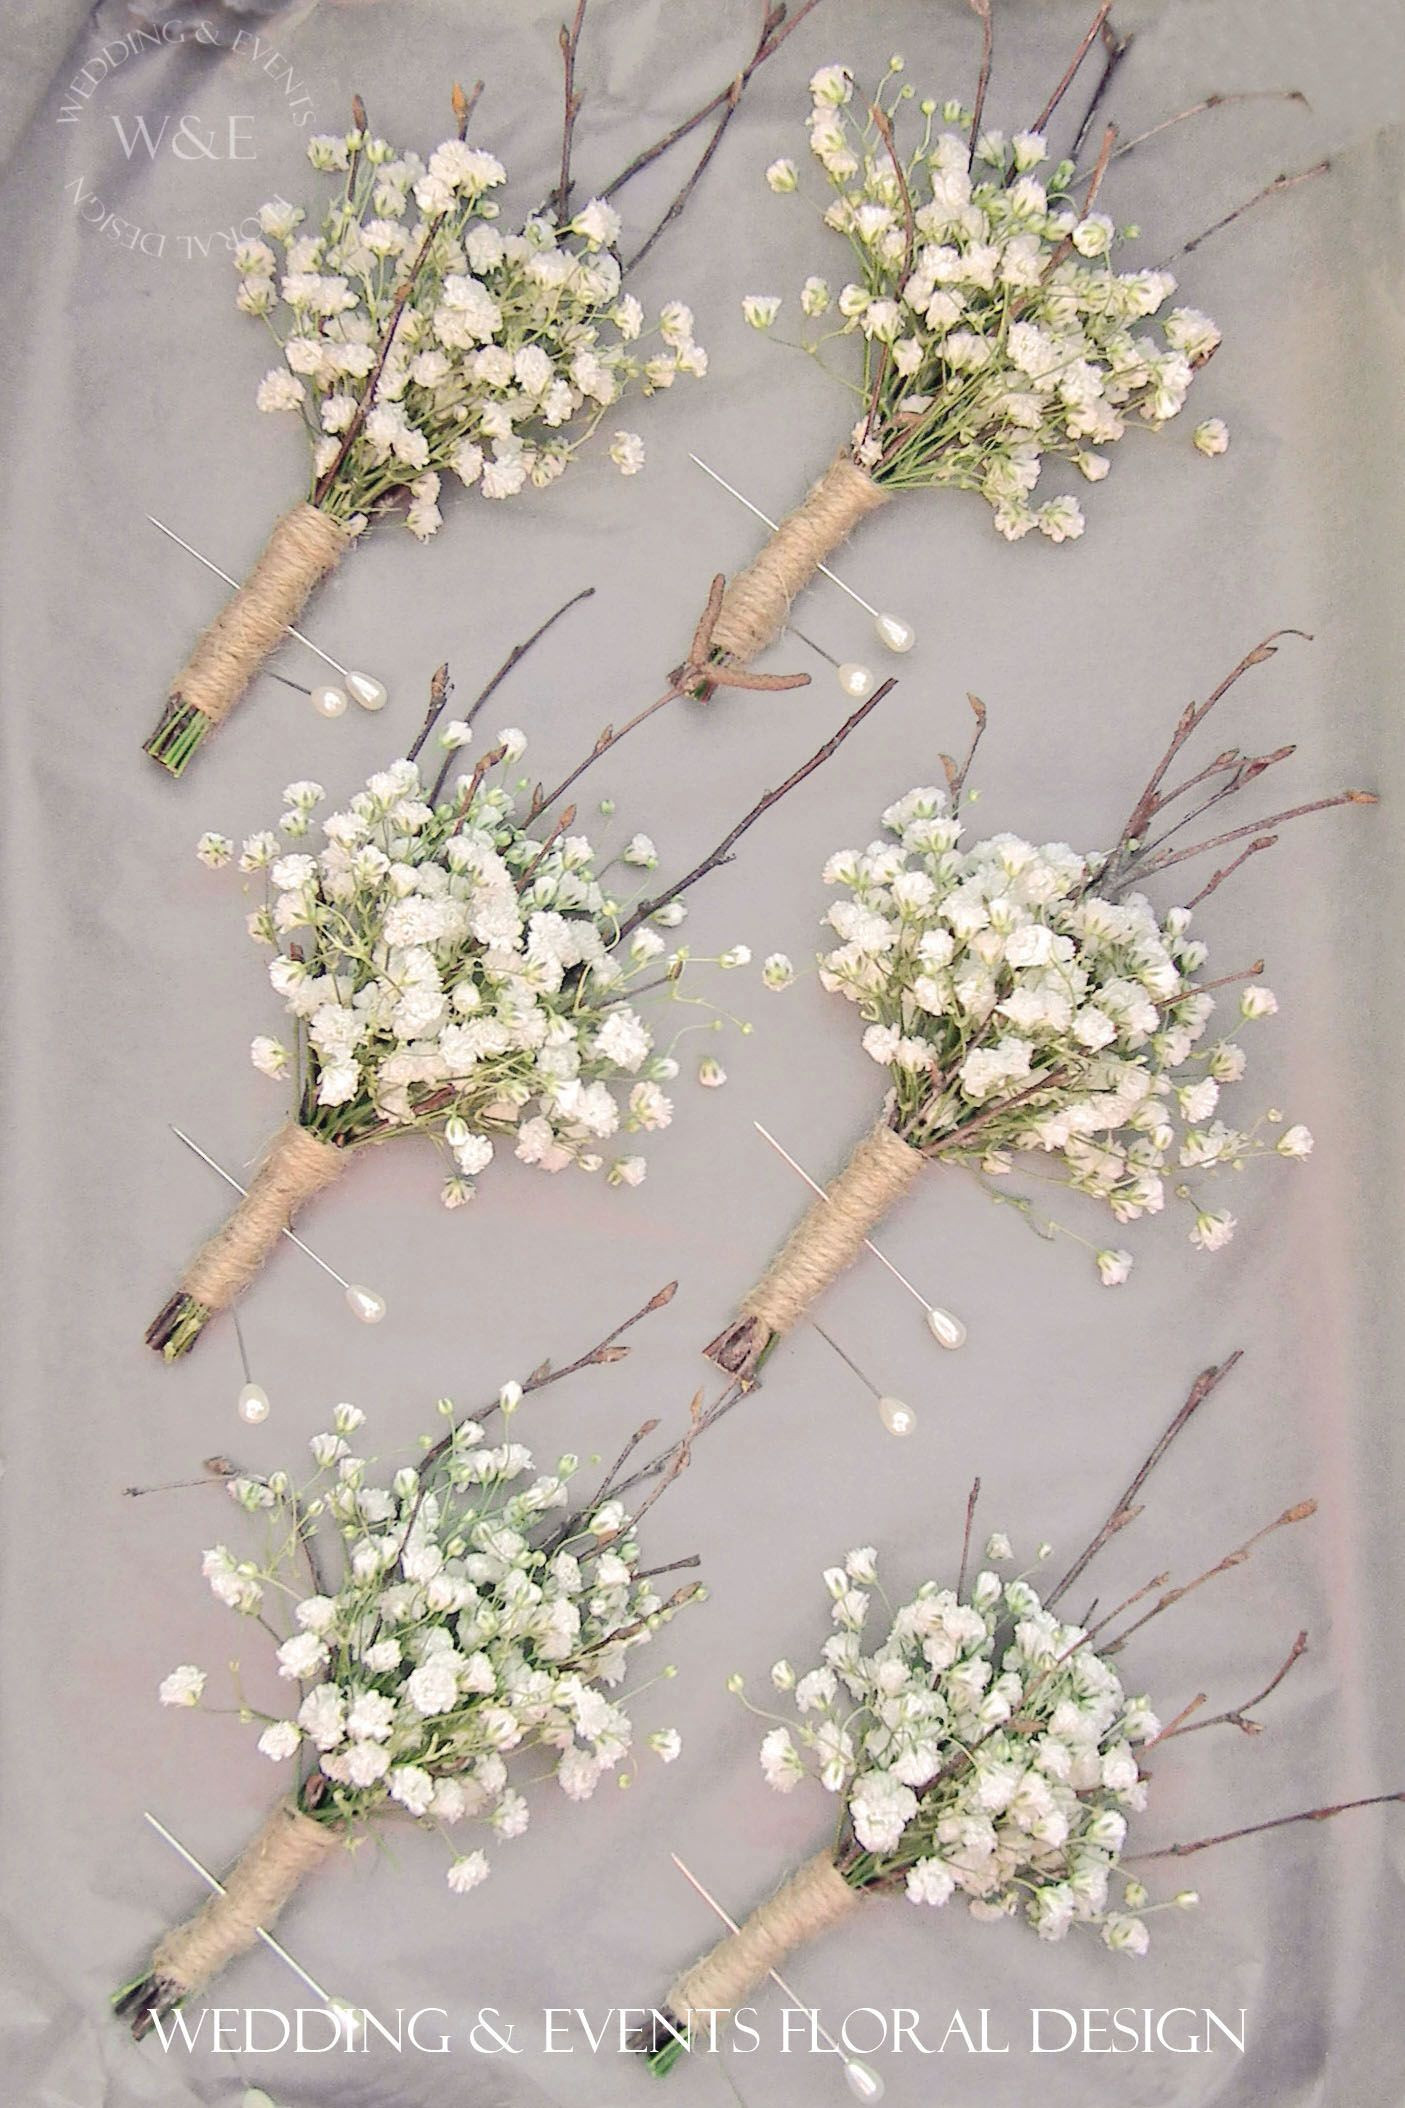 Gypsophila Twigs & Twine Buttonholes mple but fabulous Wedding & Events Floral Design North Yorkshire Wedding Flowers